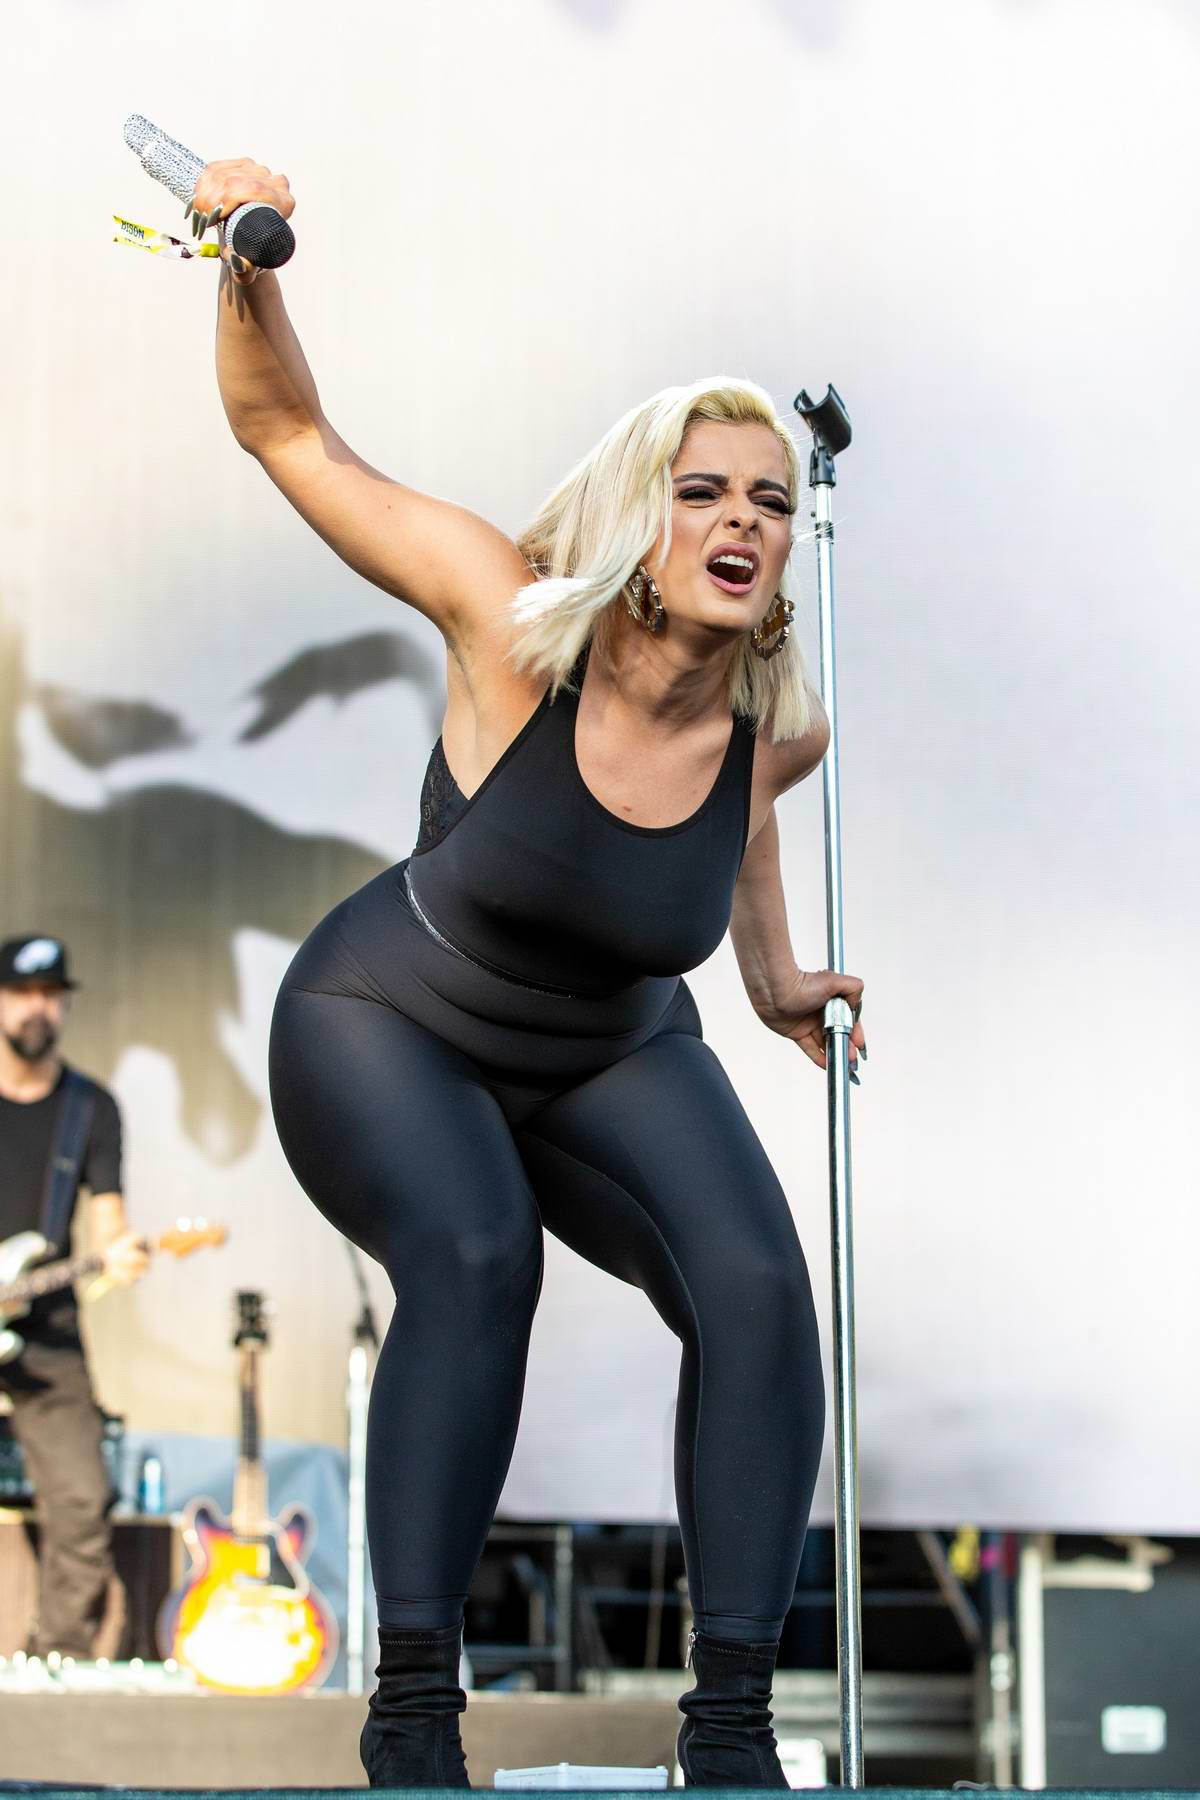 Bebe Rexha performs at Lands Music Festival at Golden Gate Park in San Francisco, California